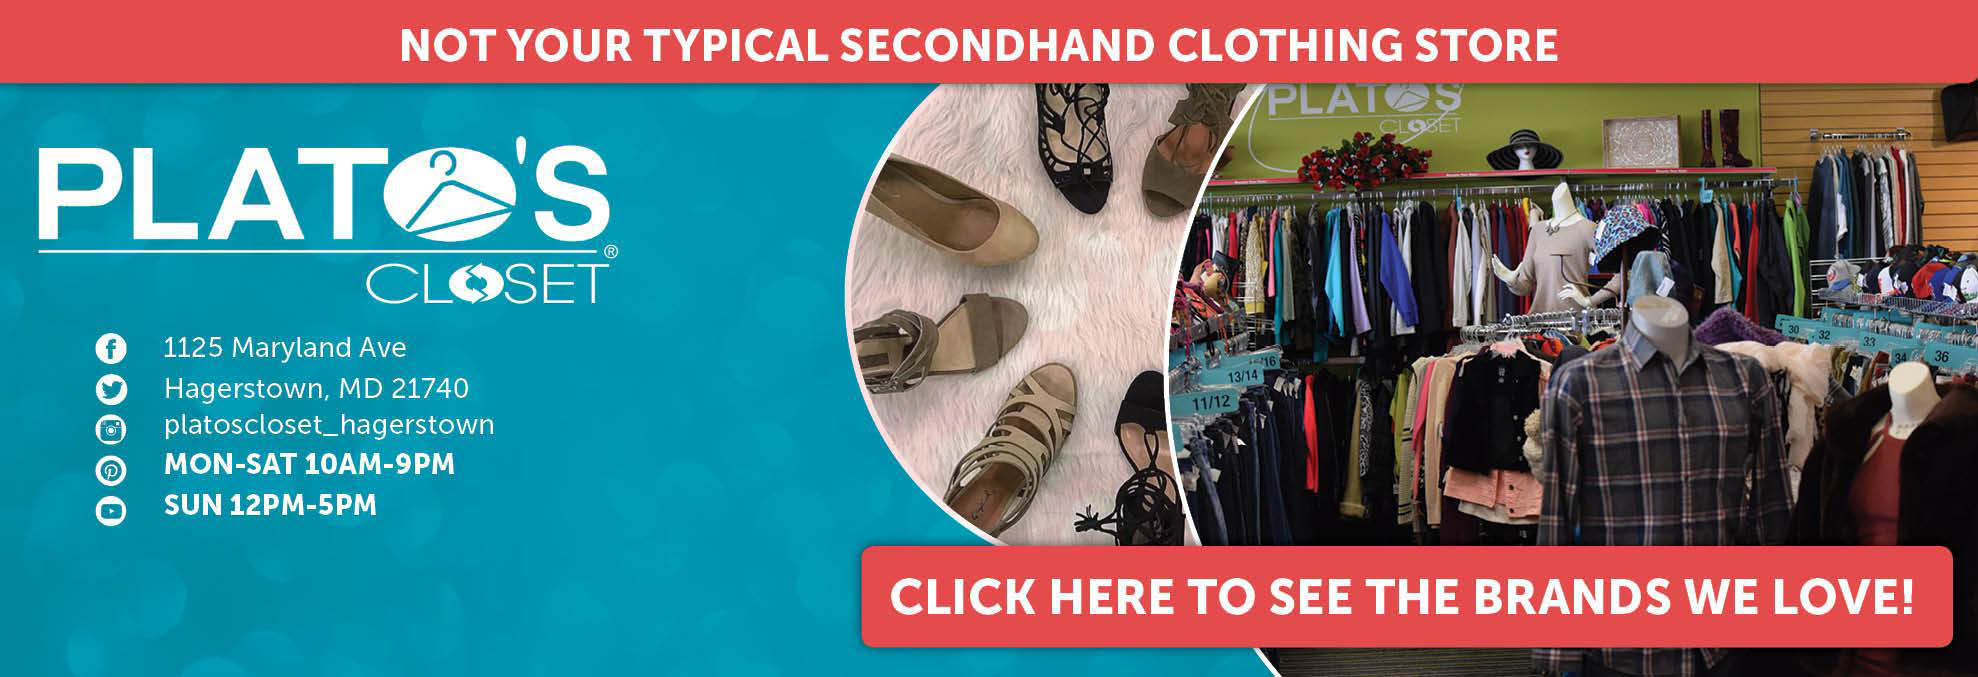 Plato's Closet, Clothing, Clothes Store, Consignment, Shop, Outfits